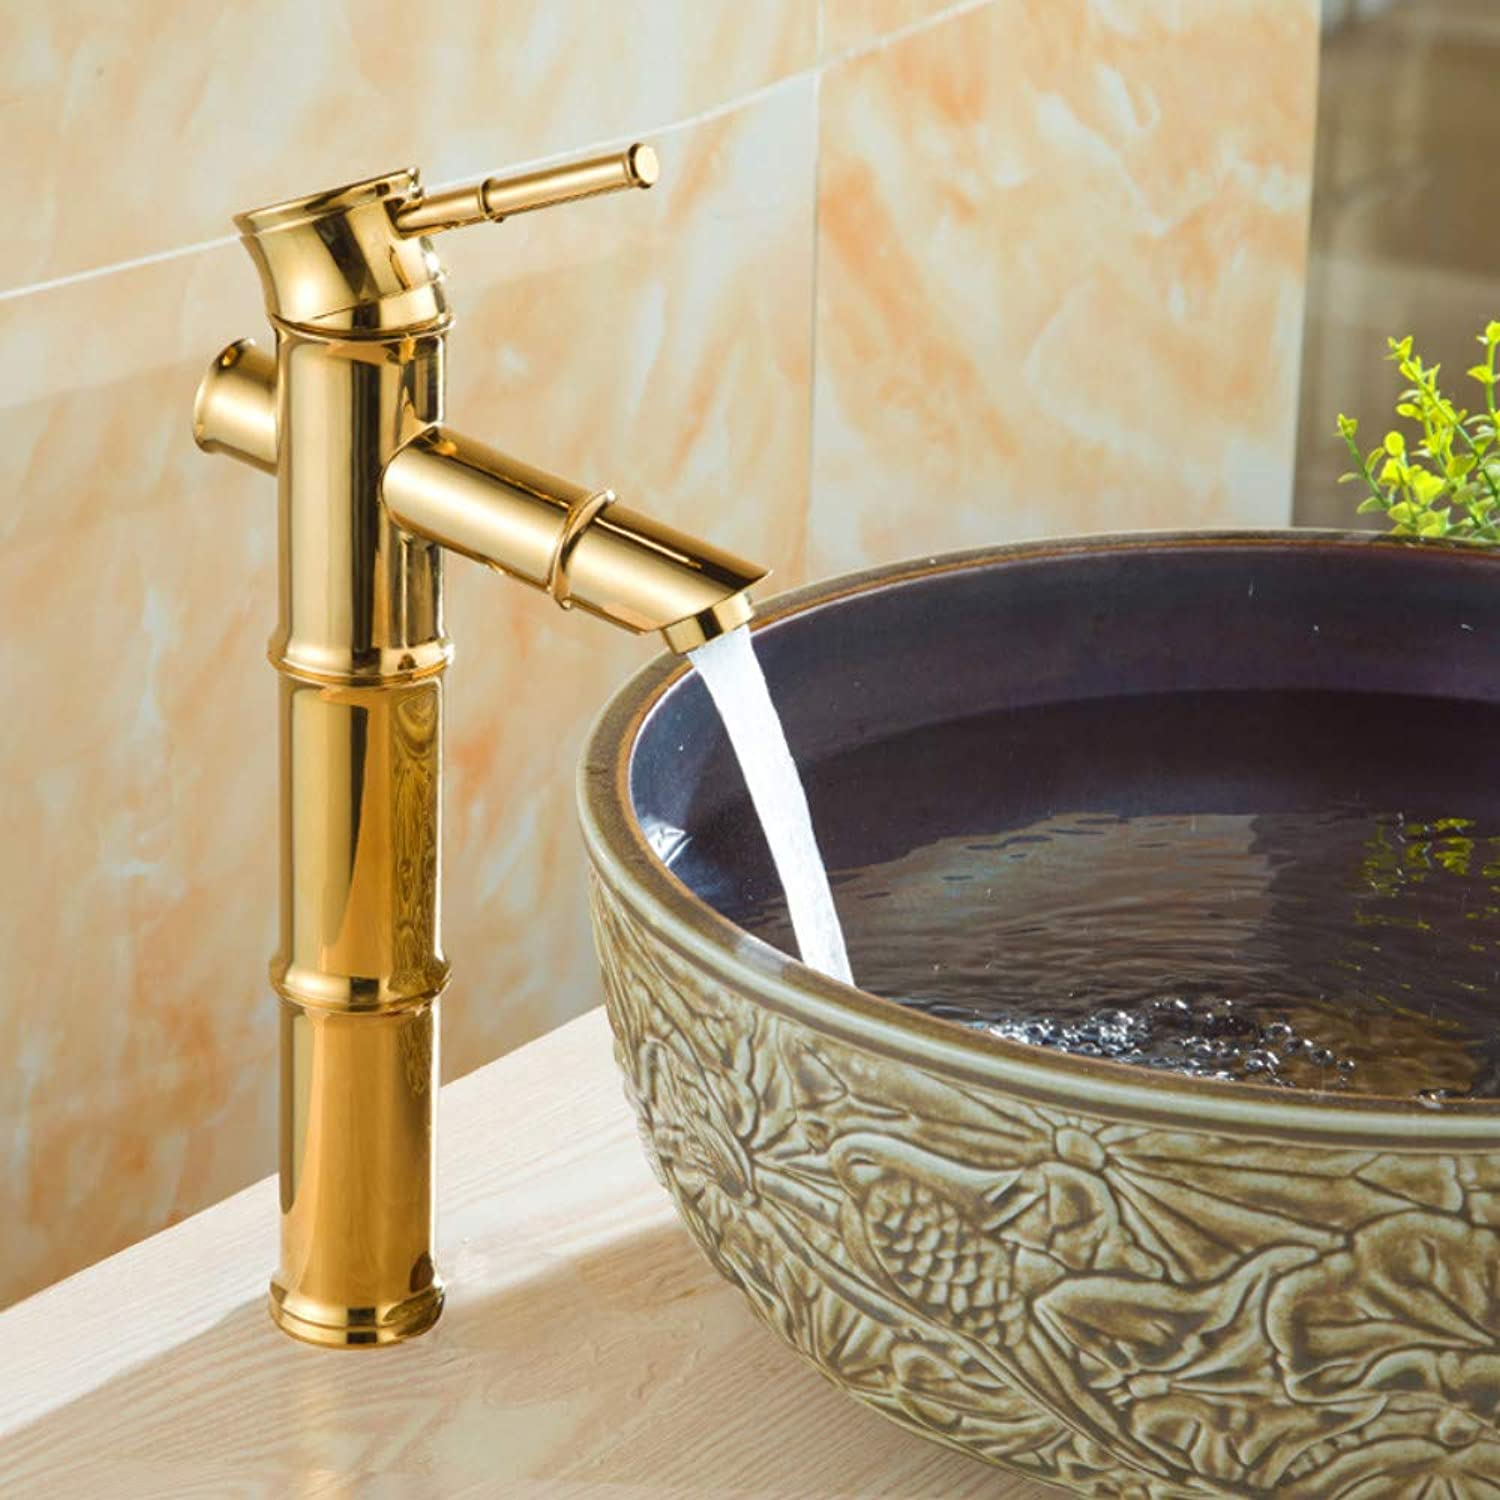 Bathroom Sink Tap Bathroom Basin Sink Bamboo Style Faucet Basin Mixer Tap golden Polished Copper Faucets Sink Faucet